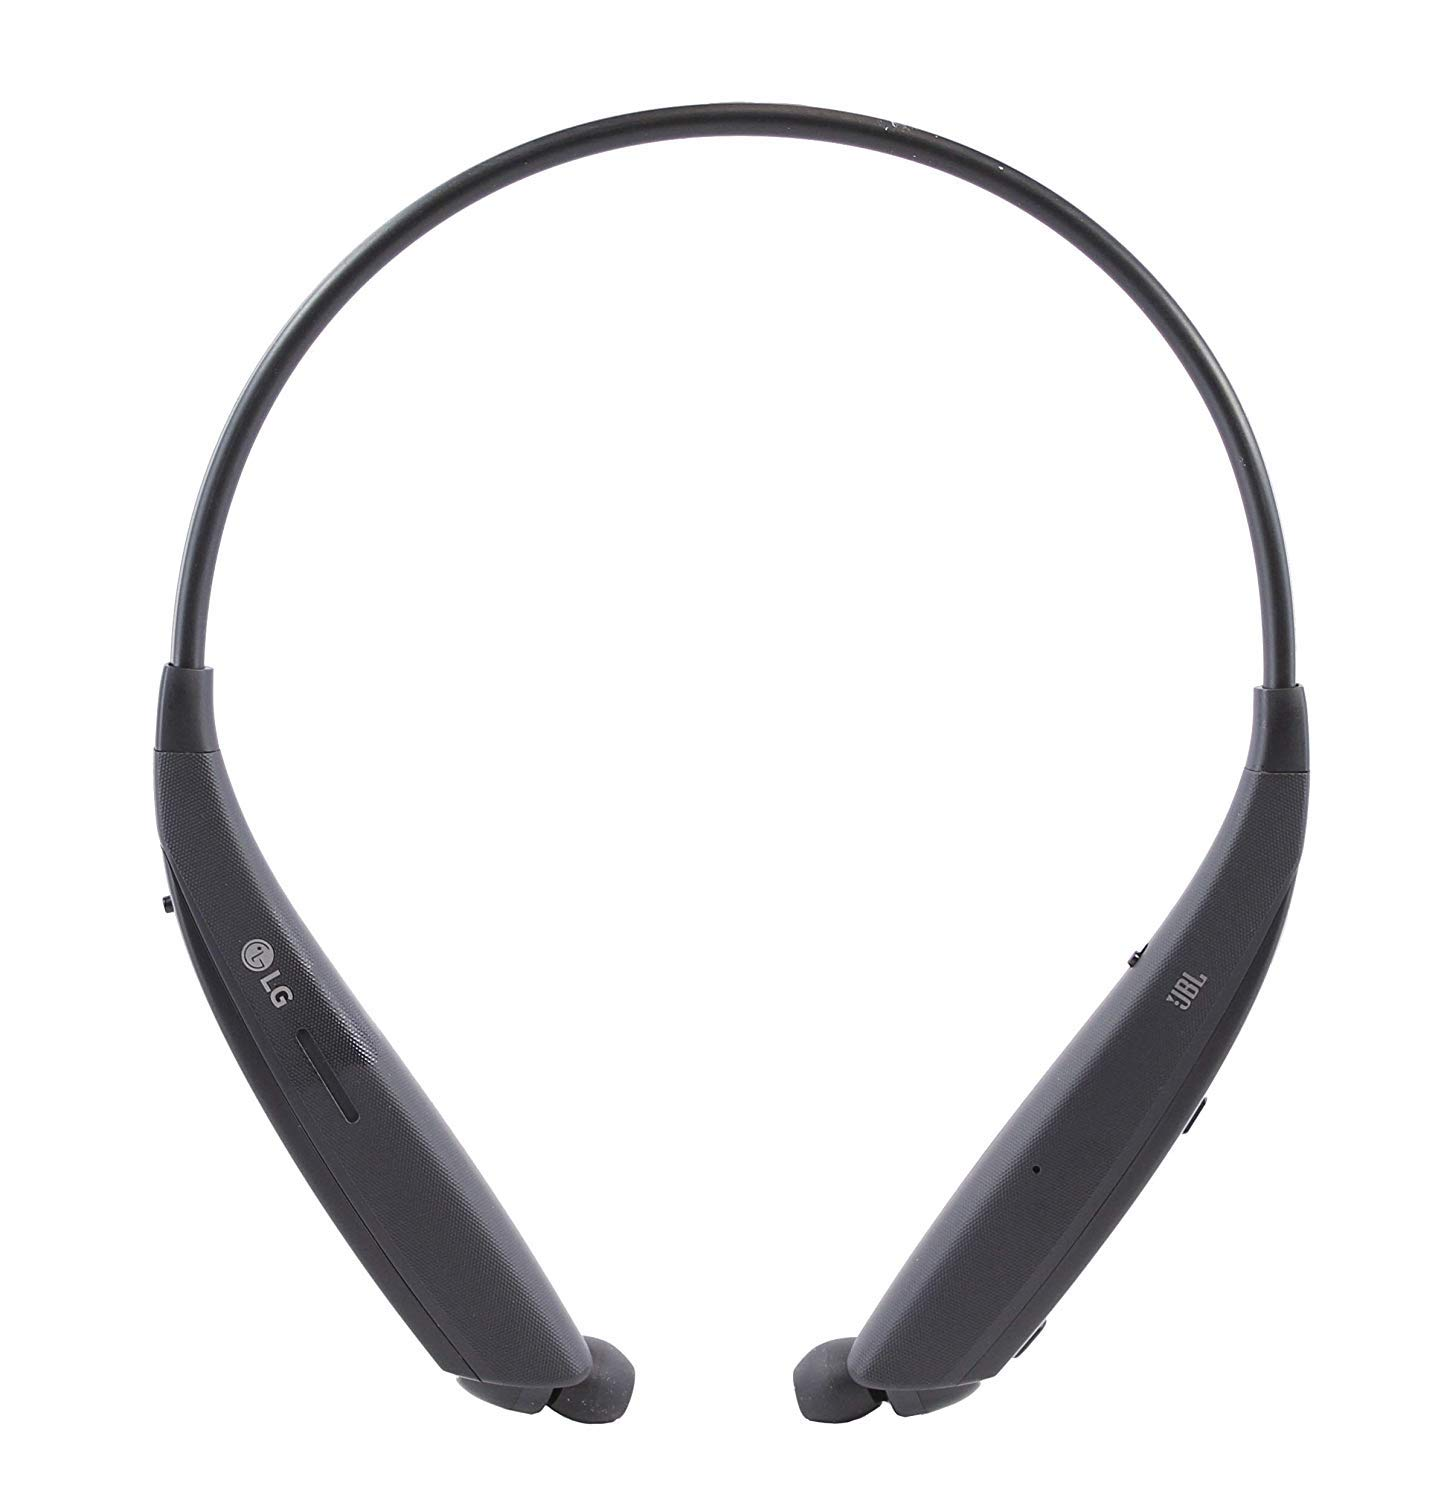 LG TONE Ultra SE Bluetooth Wireless Stereo Headset HBS-835S - Serial Black - Renewed